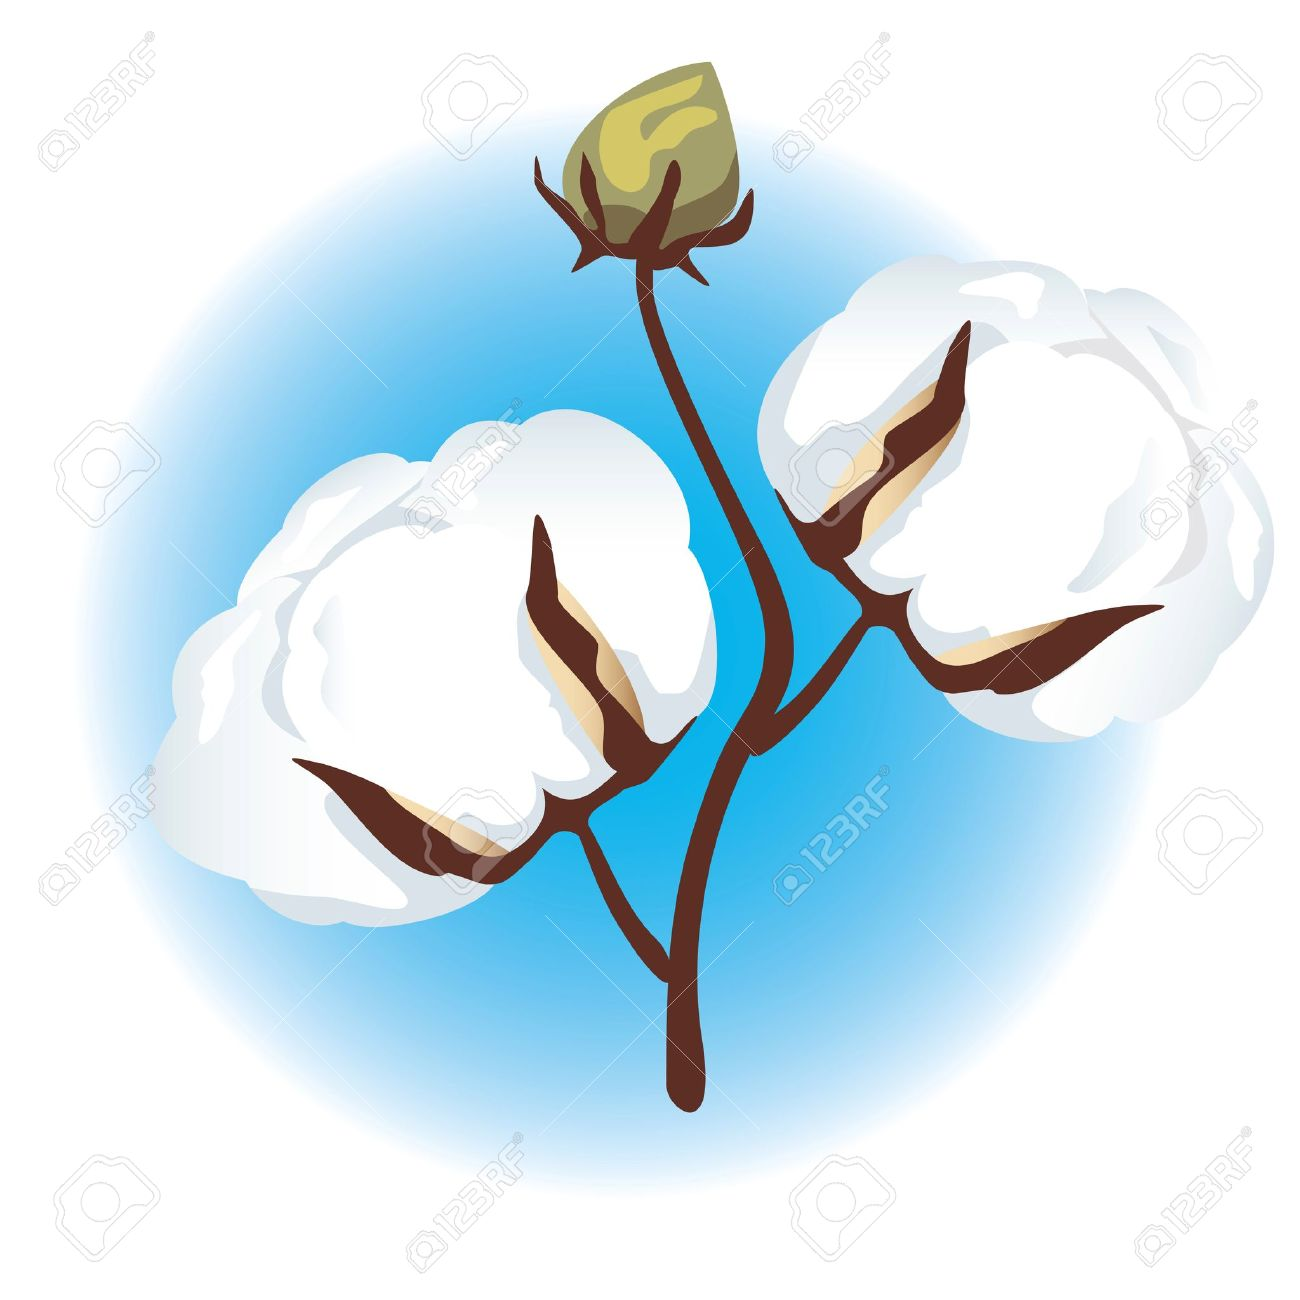 Cotton flower clipart.